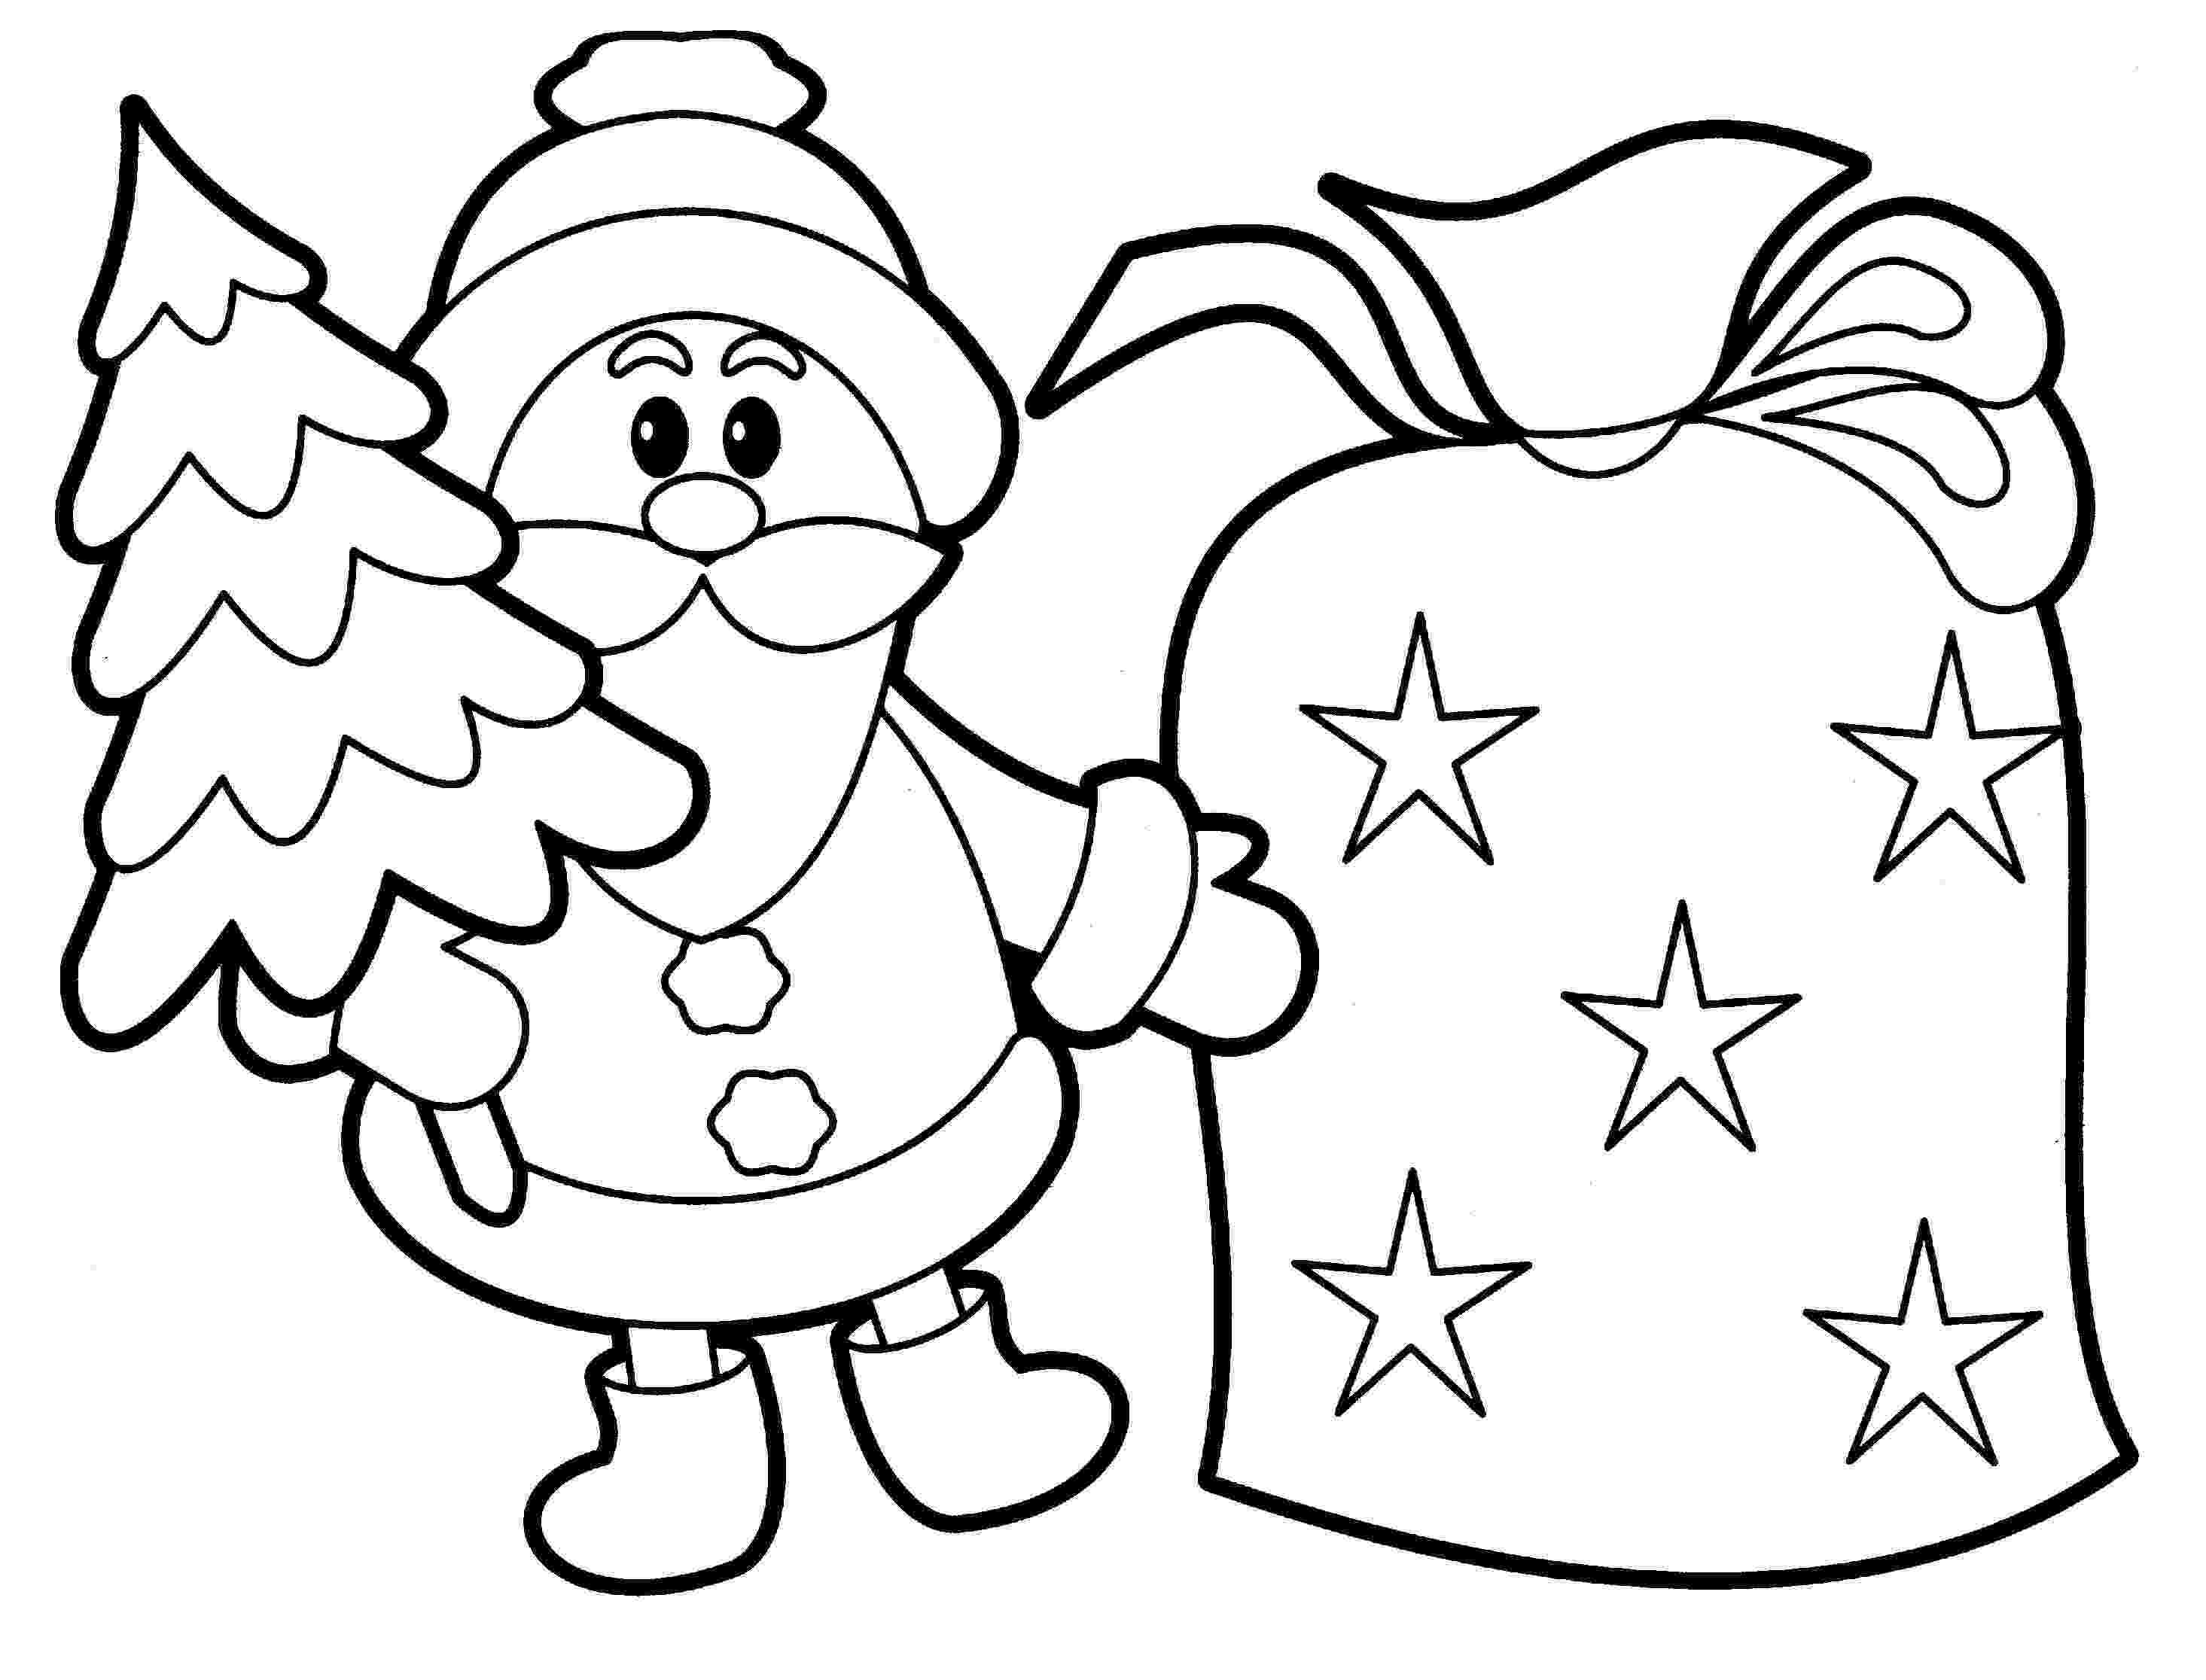 colouring pages about christmas merry christmas coloring pages for adults printable colouring about pages christmas